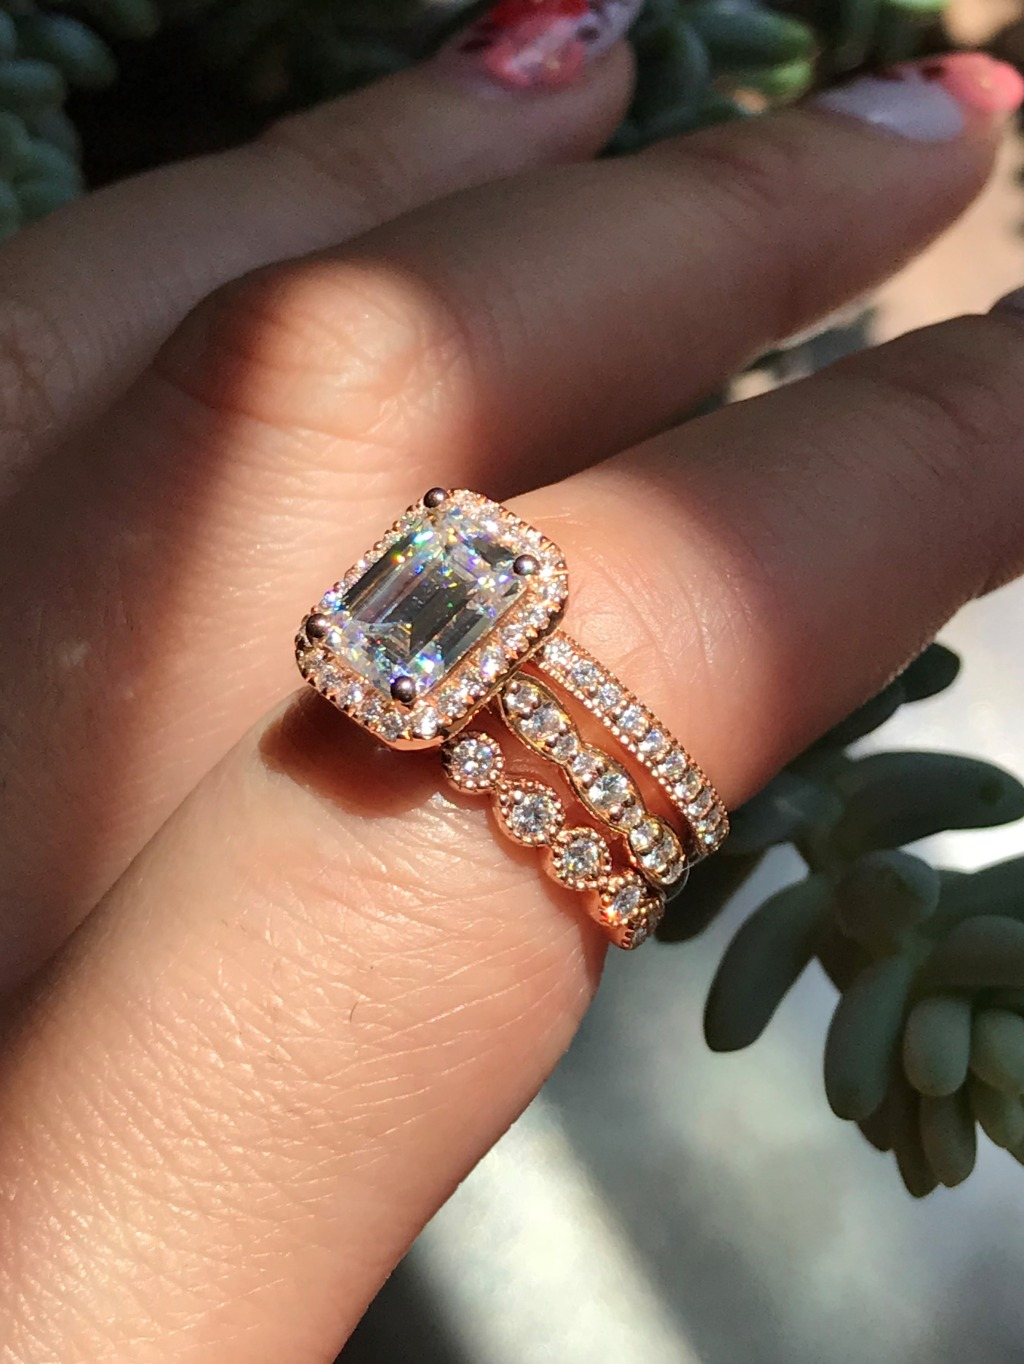 Vintage styled wedding bands look gorgeous paired with this Emerald Cut Moissanite Engagement Ring ~ Shop our Emerald Cut stacks!